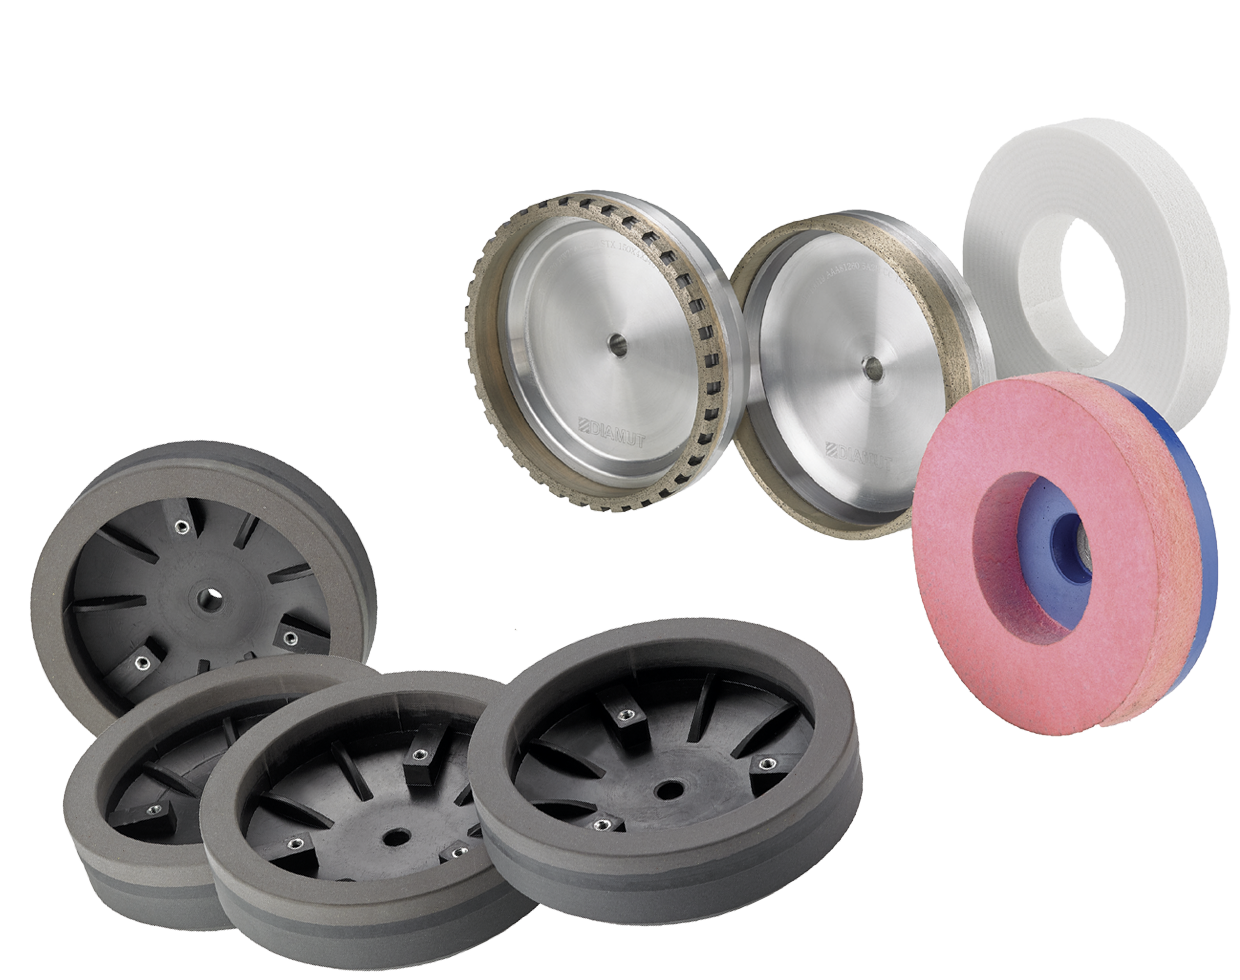 Cup grinding wheels for bevelling machines: Photo 1